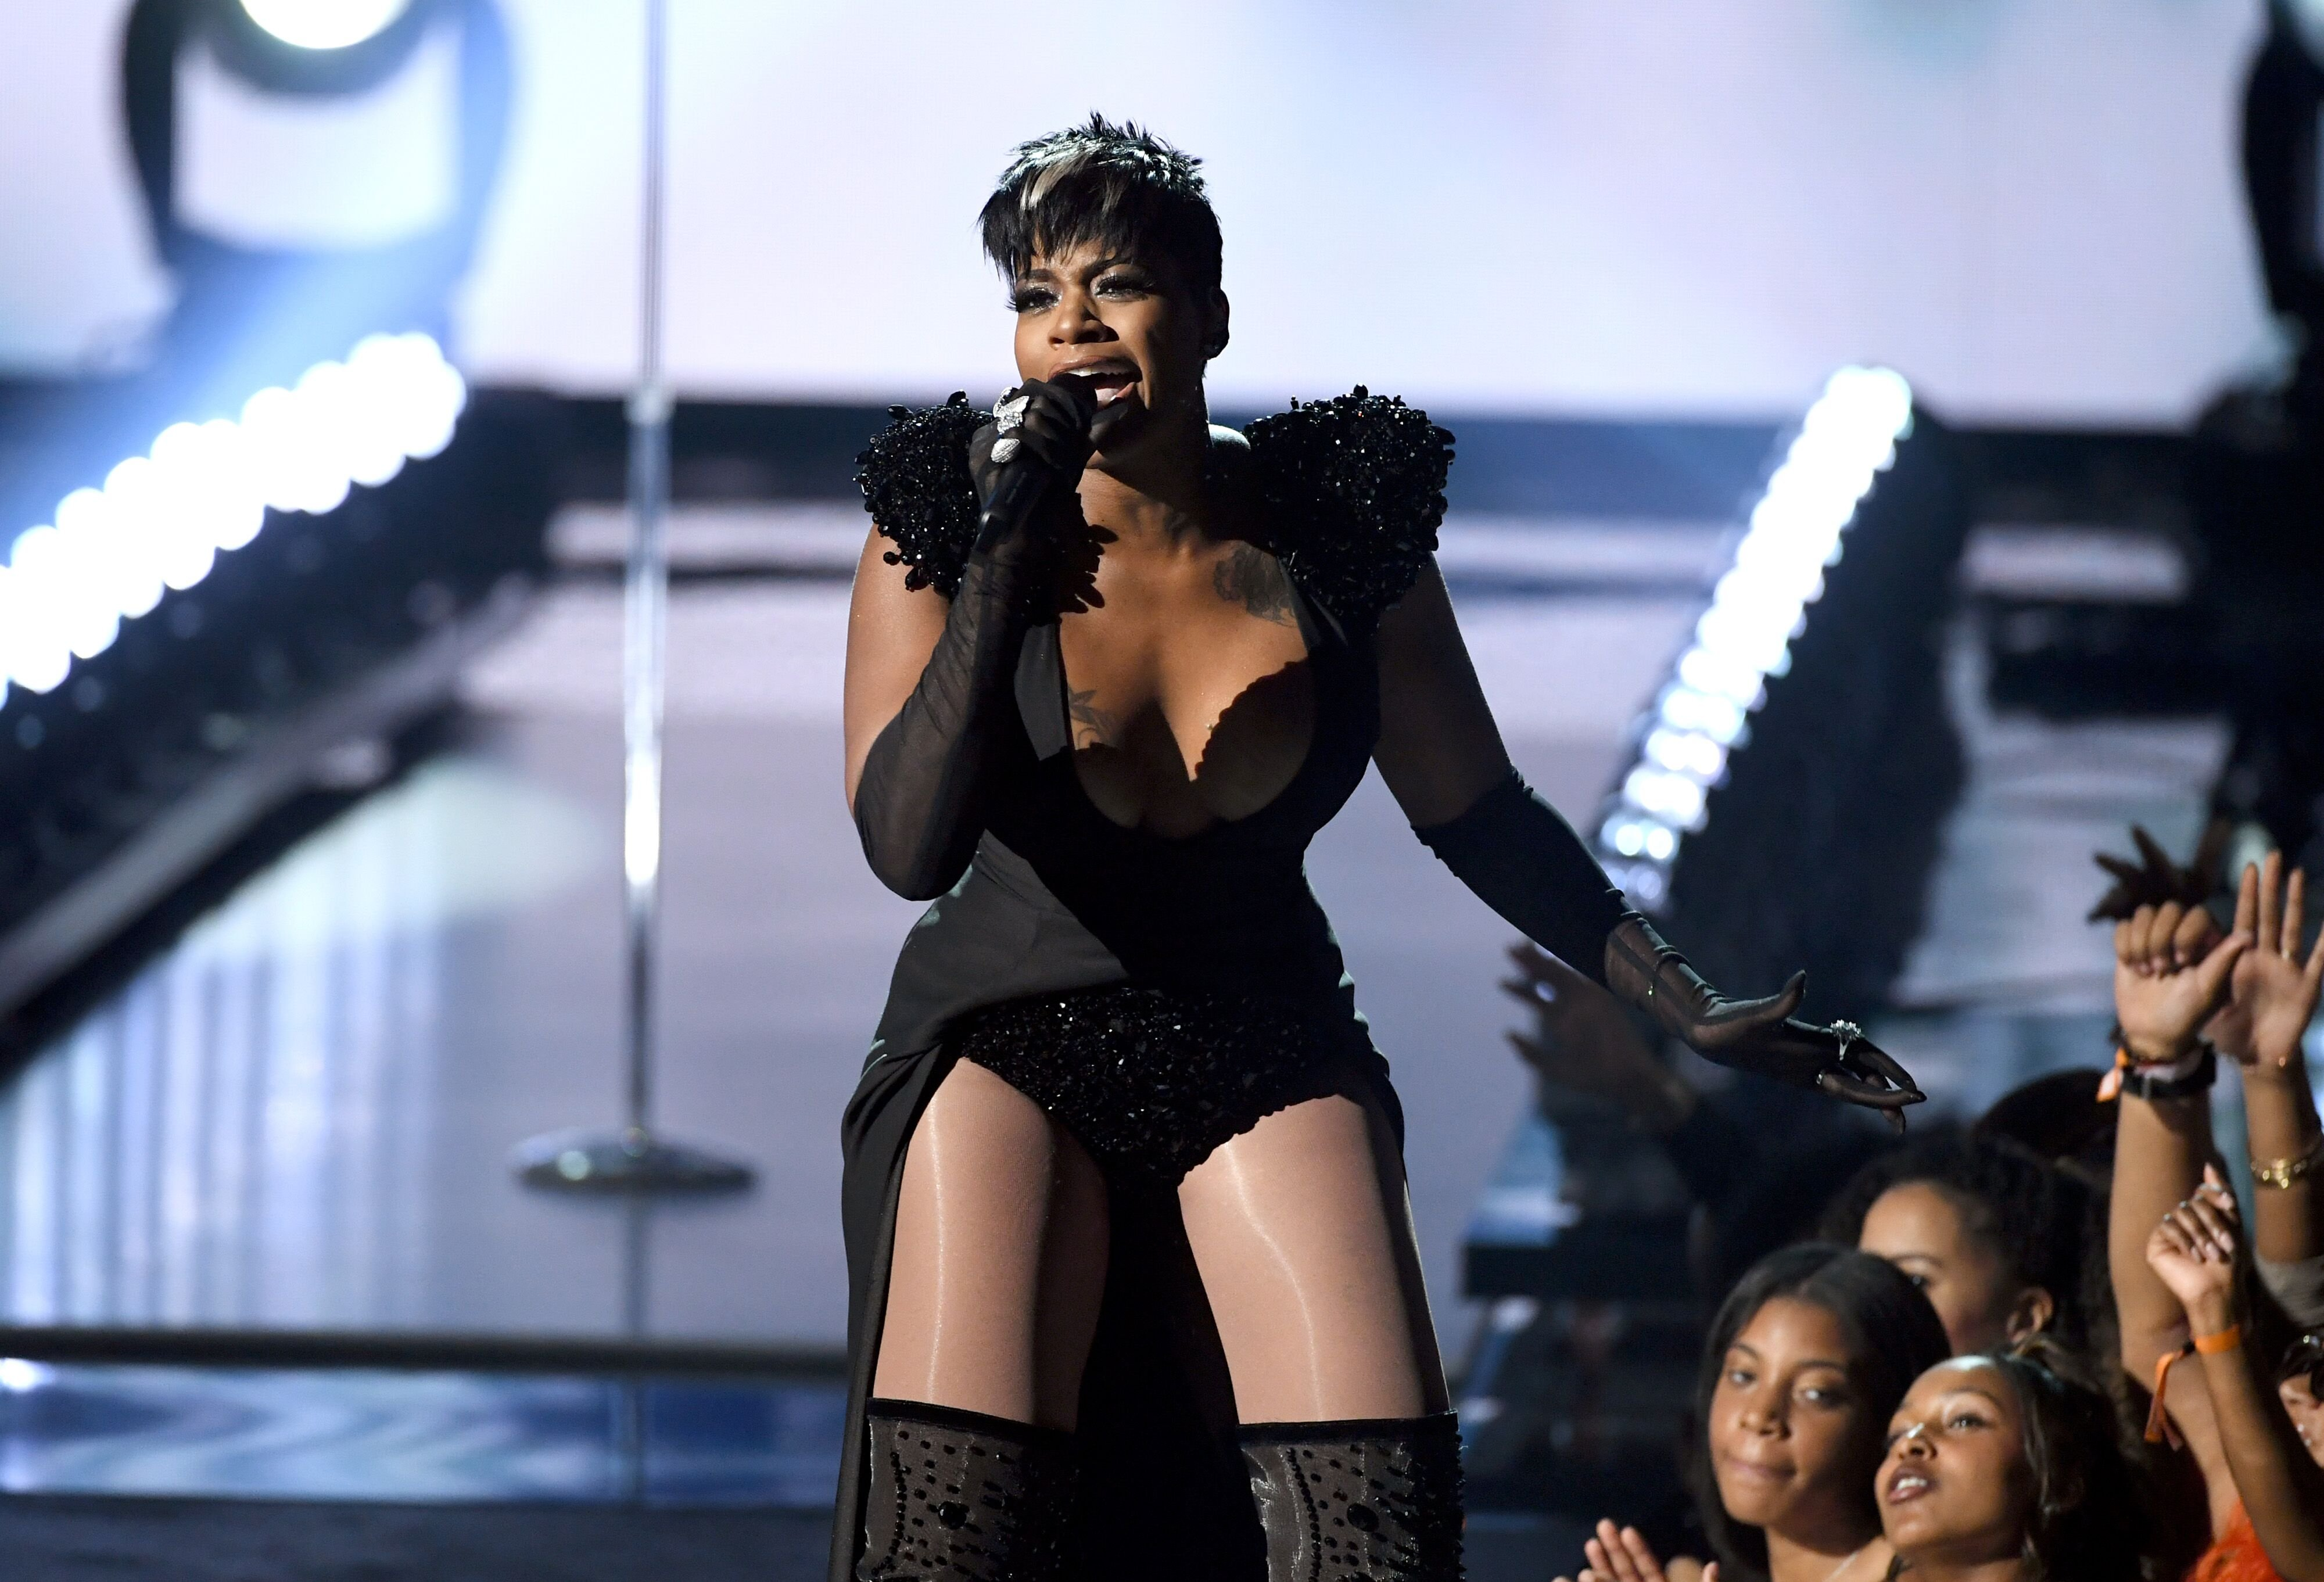 Fantasia Barrino performs onstage at the 2019 BET Awards in 2019 in Los Angeles, California   Source: Getty Images